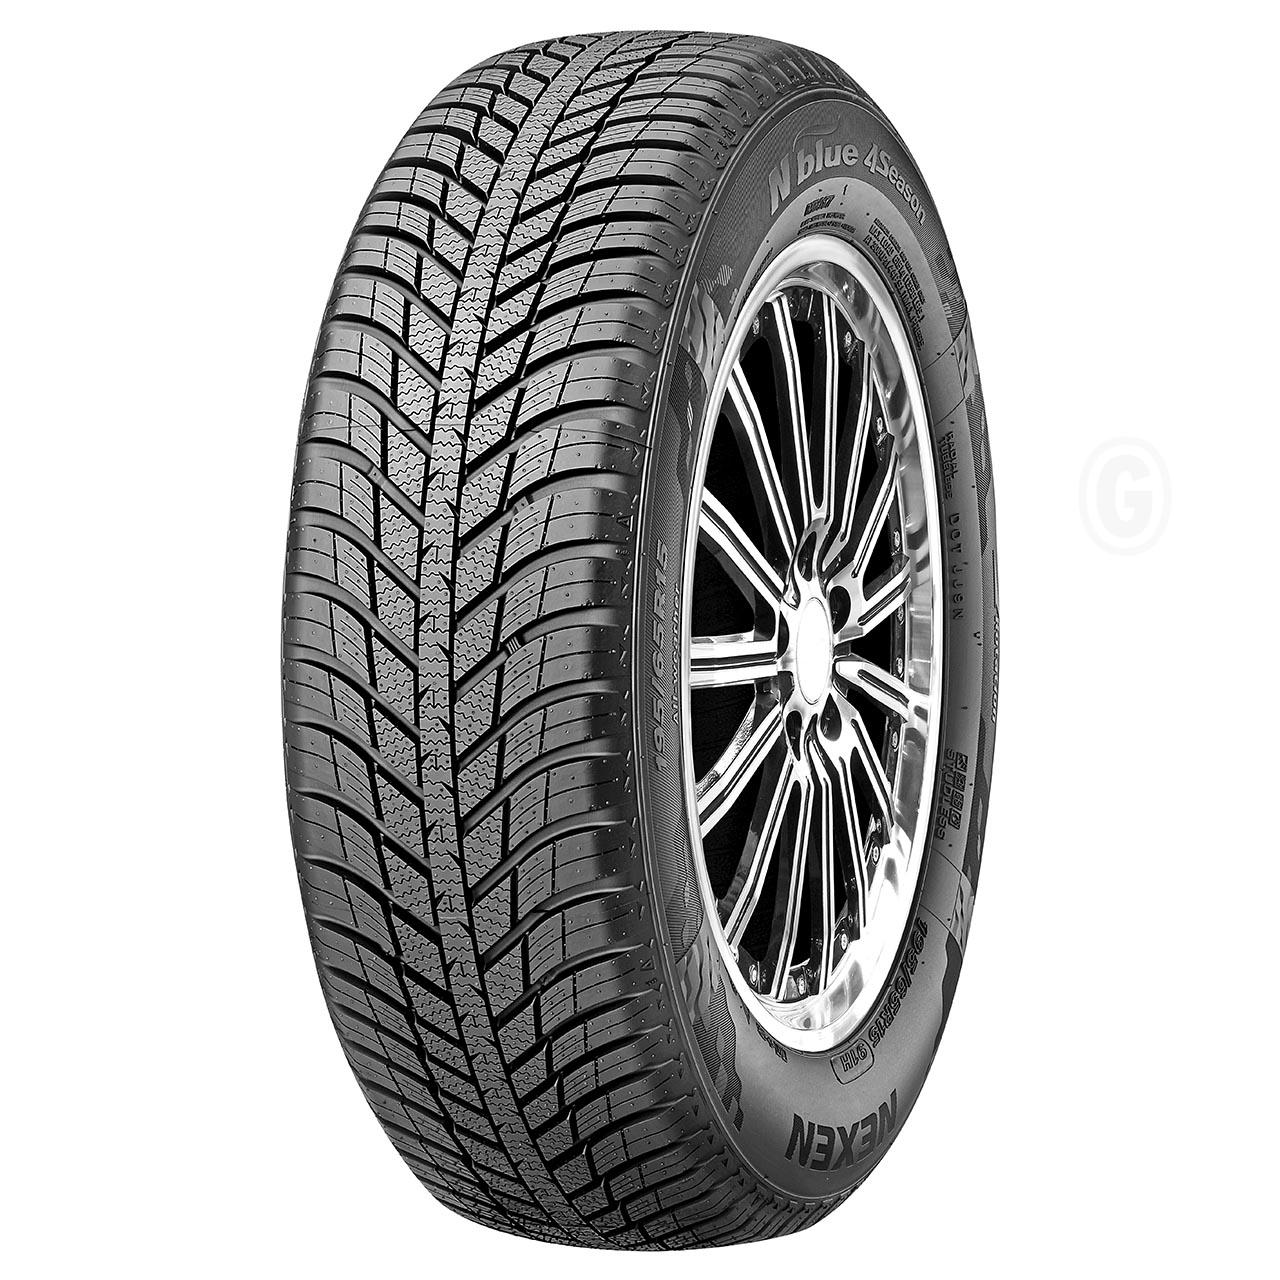 Nexen N Blue 4season 225/40R18 92V XL